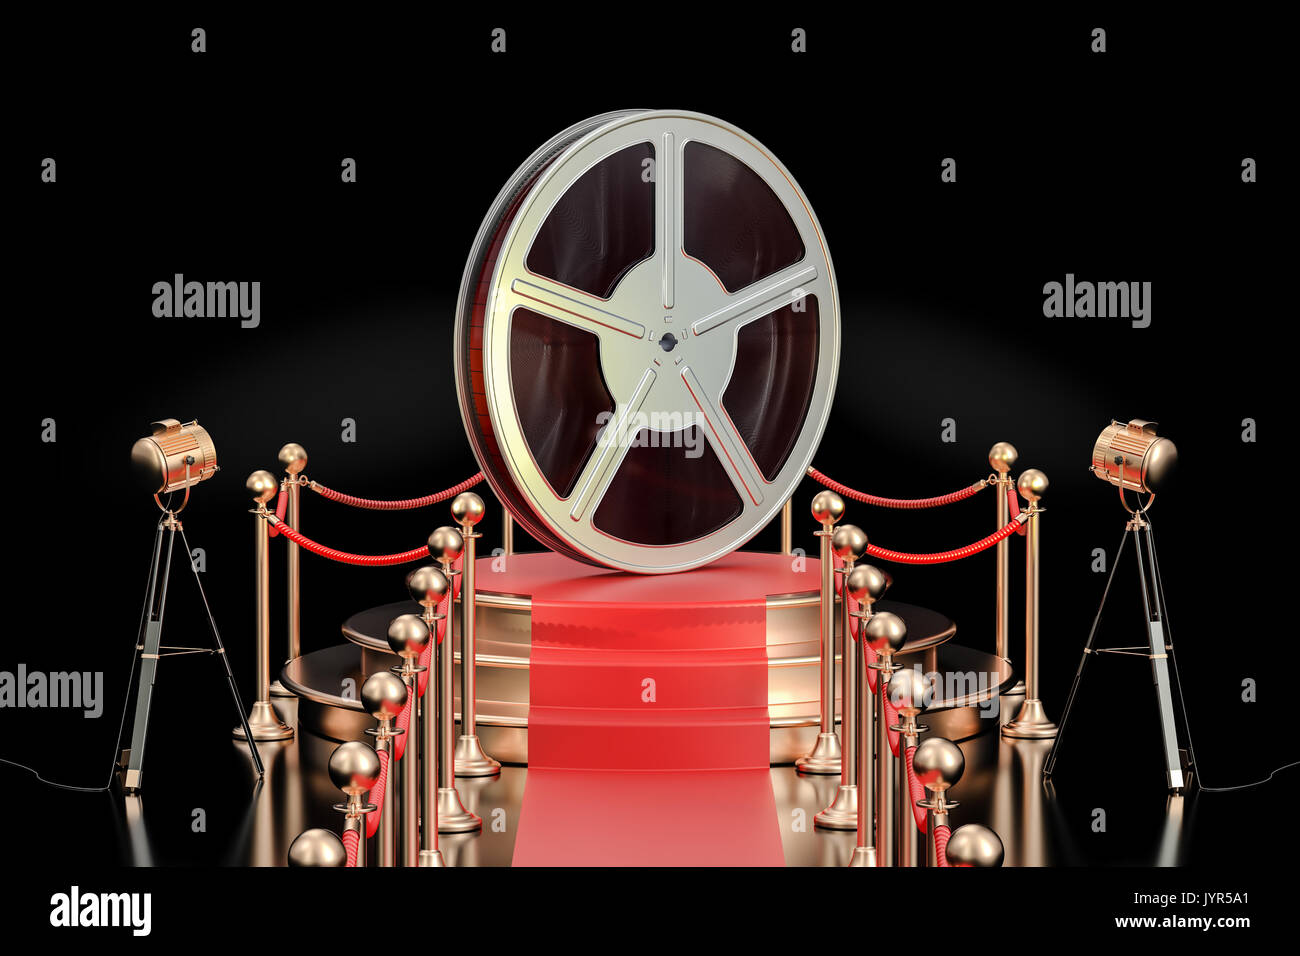 Podium with film reel, presentation concept. 3D rendering isolated on black background - Stock Image